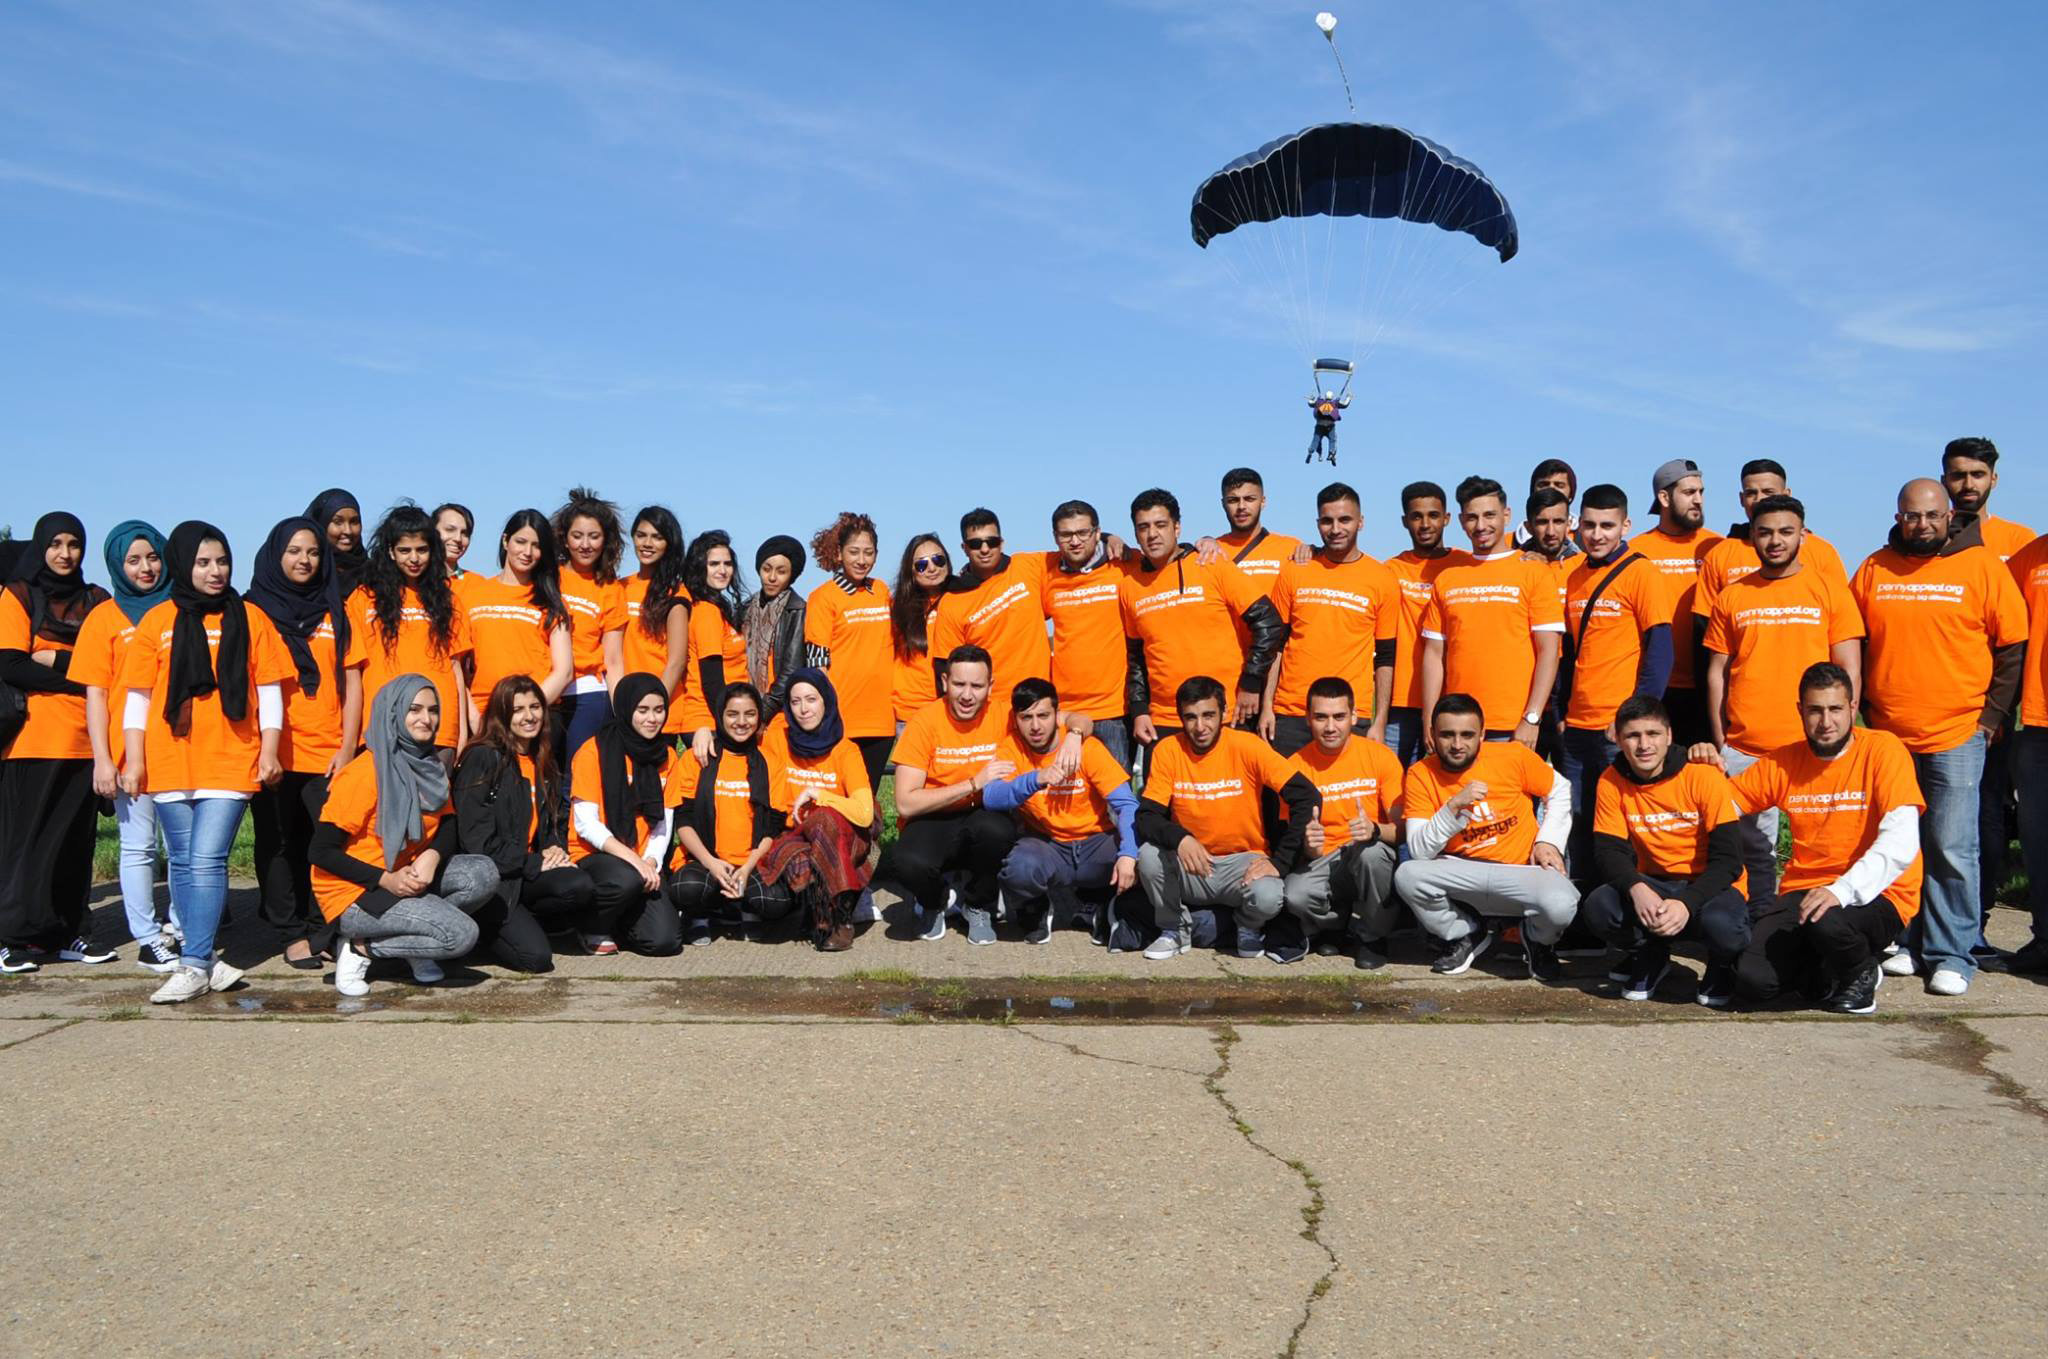 #TeamOrange skydivers